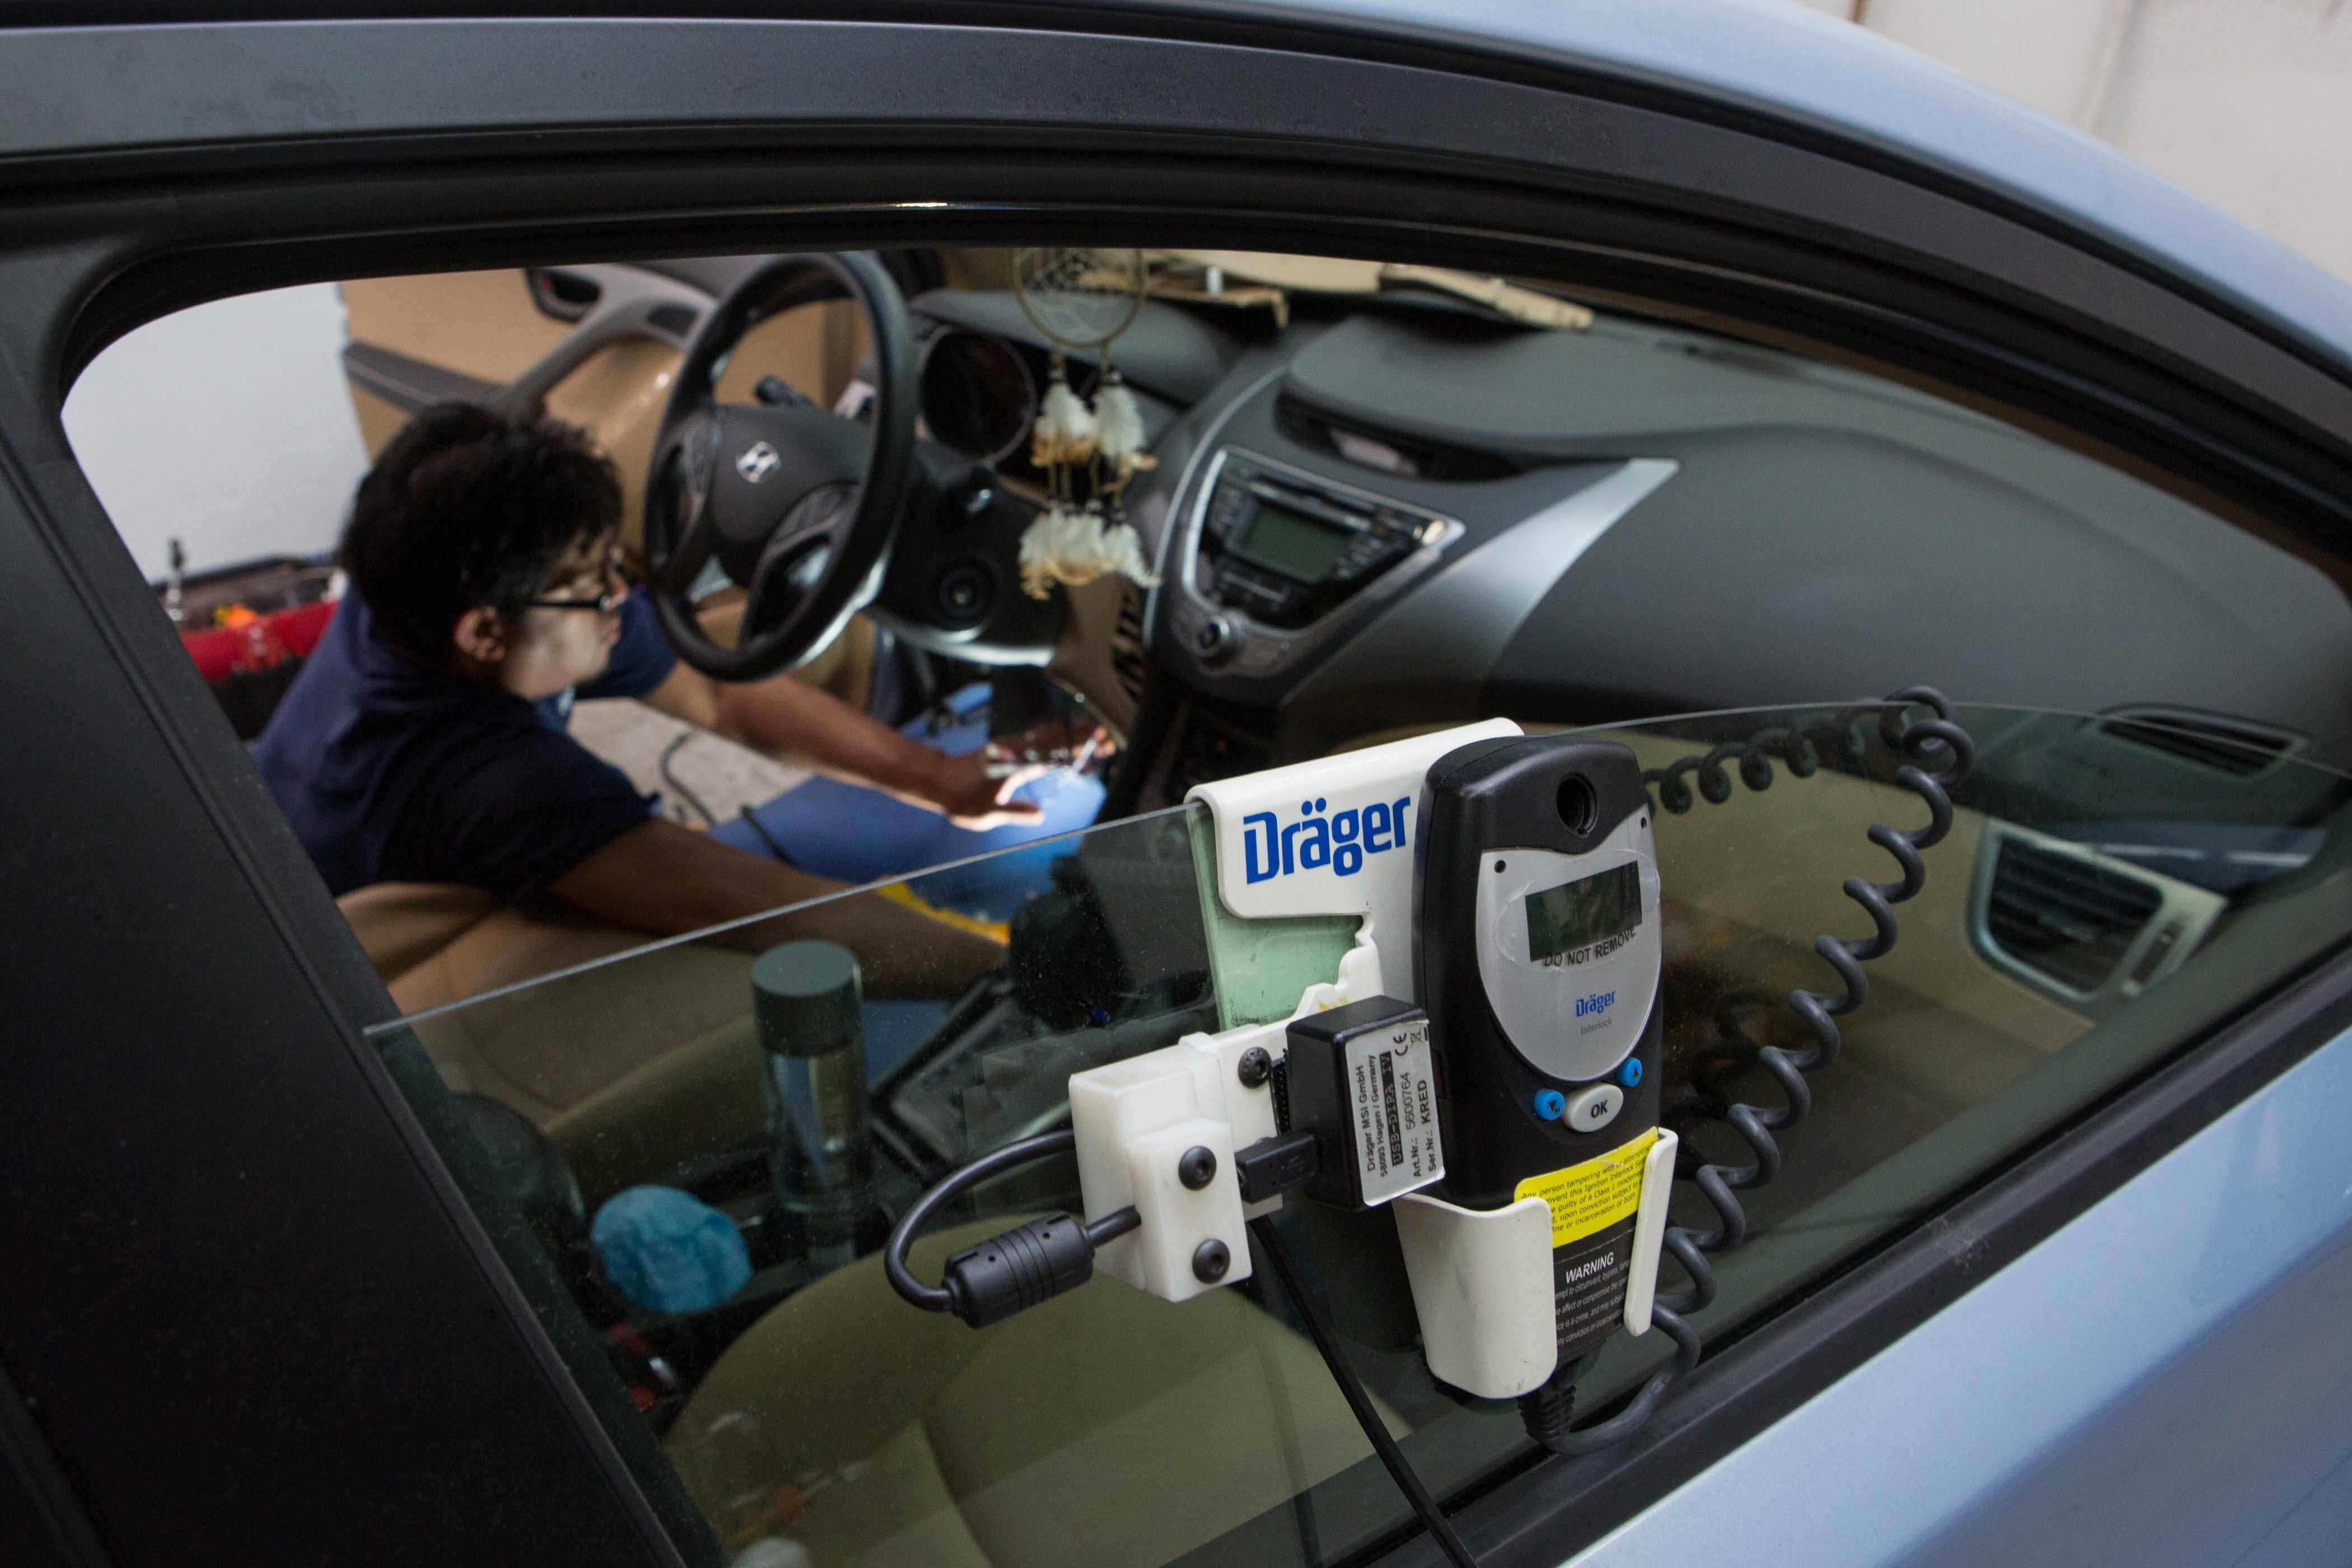 Technician Gabriel Cajchun works with an ignition interlock device at an Alexandria service center. The device is designed to keep drunk drivers from operating their vehicles.